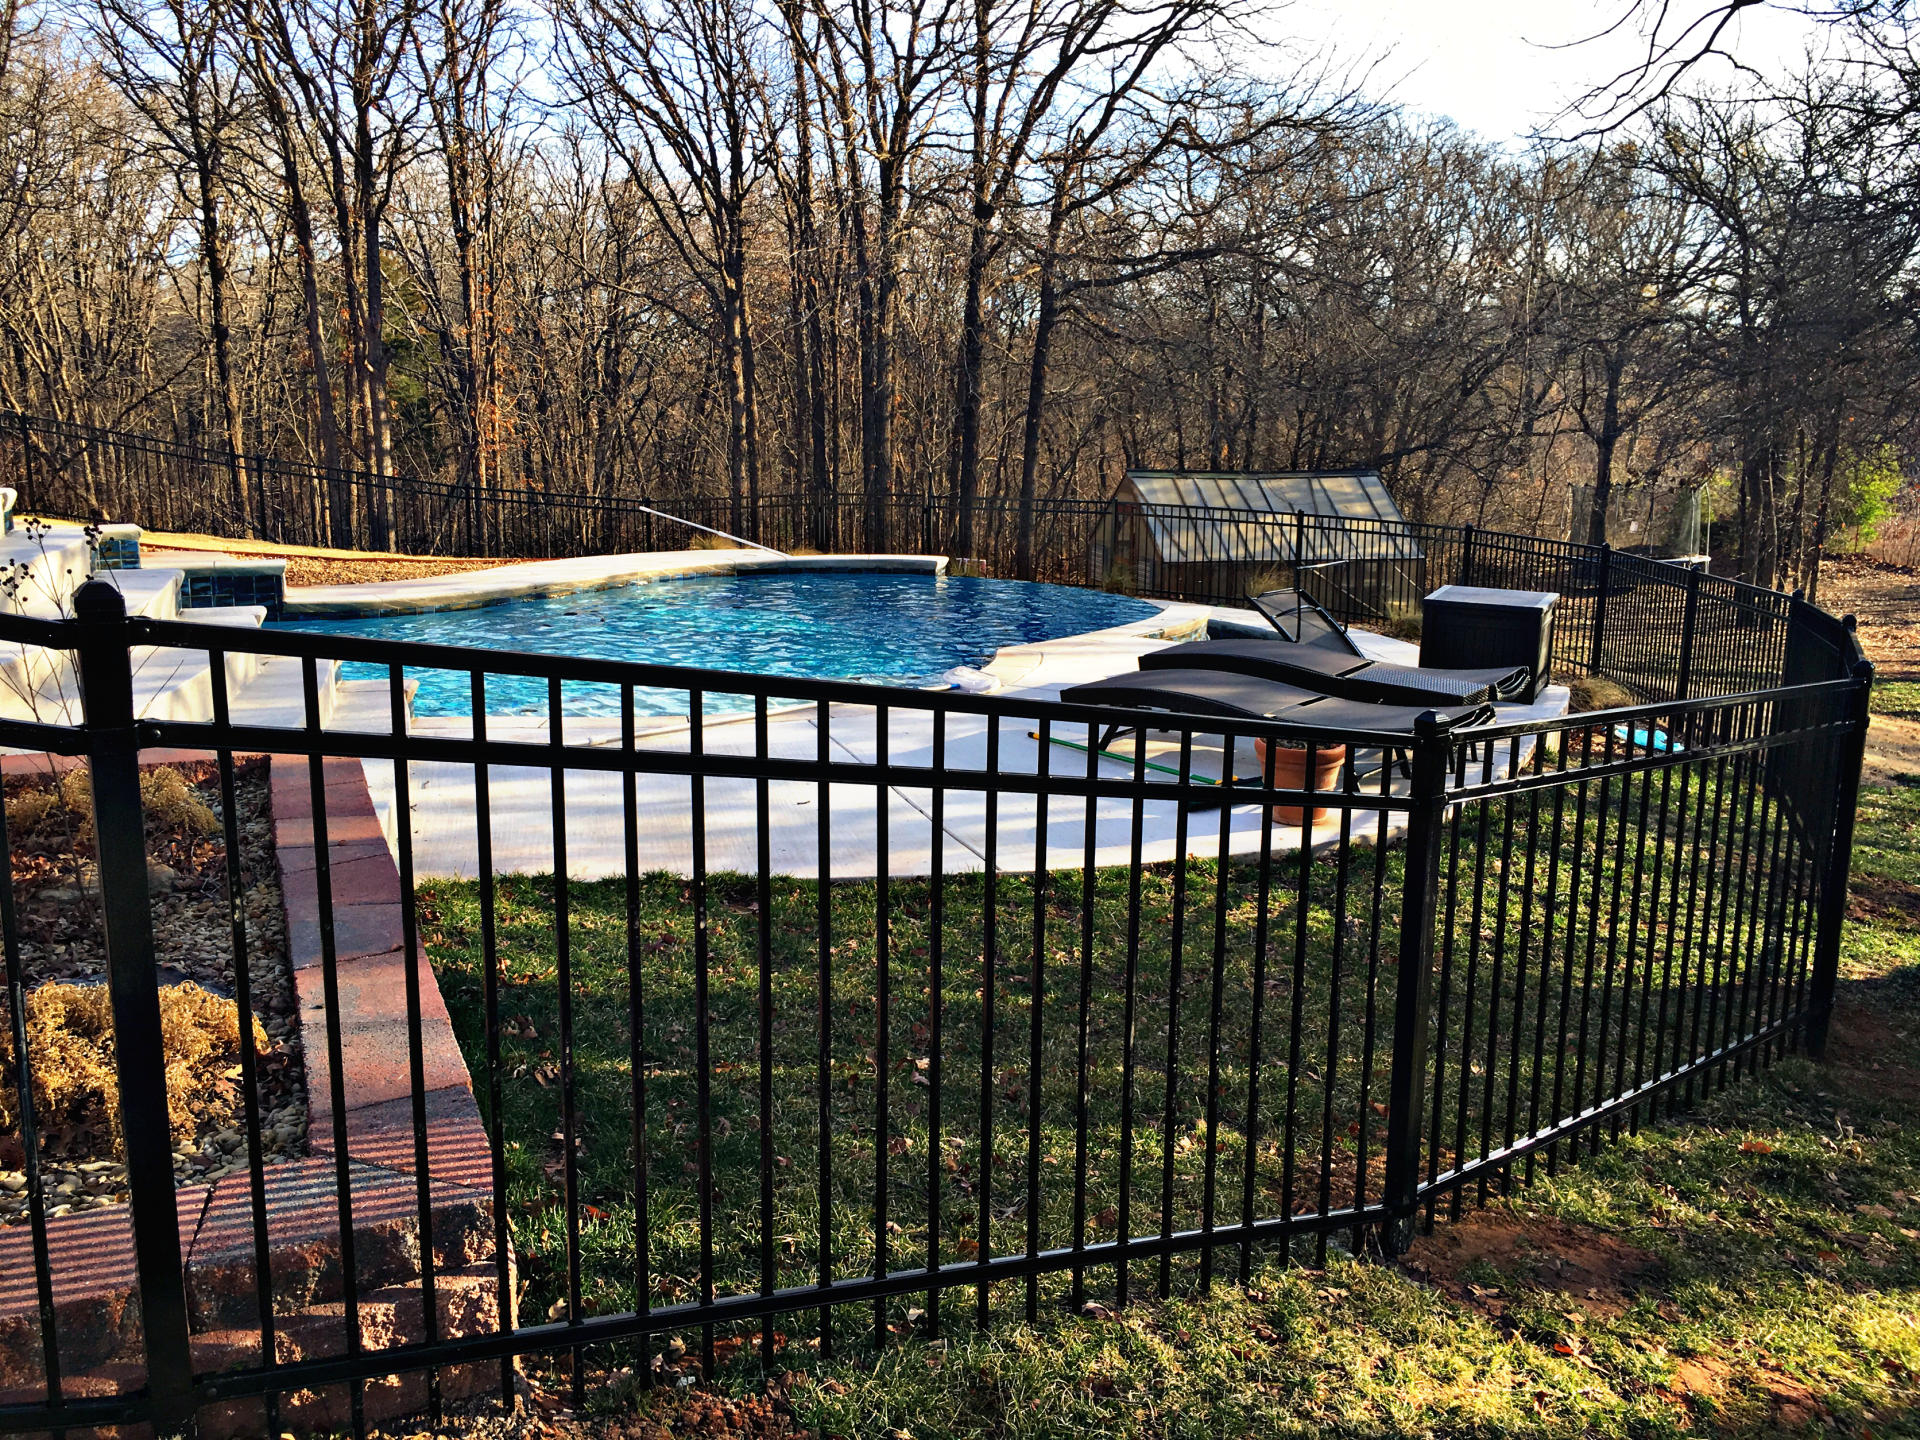 Iron Ameristar Montage Pool Fence for Security Edmond Oklahoma Fence Gate Company